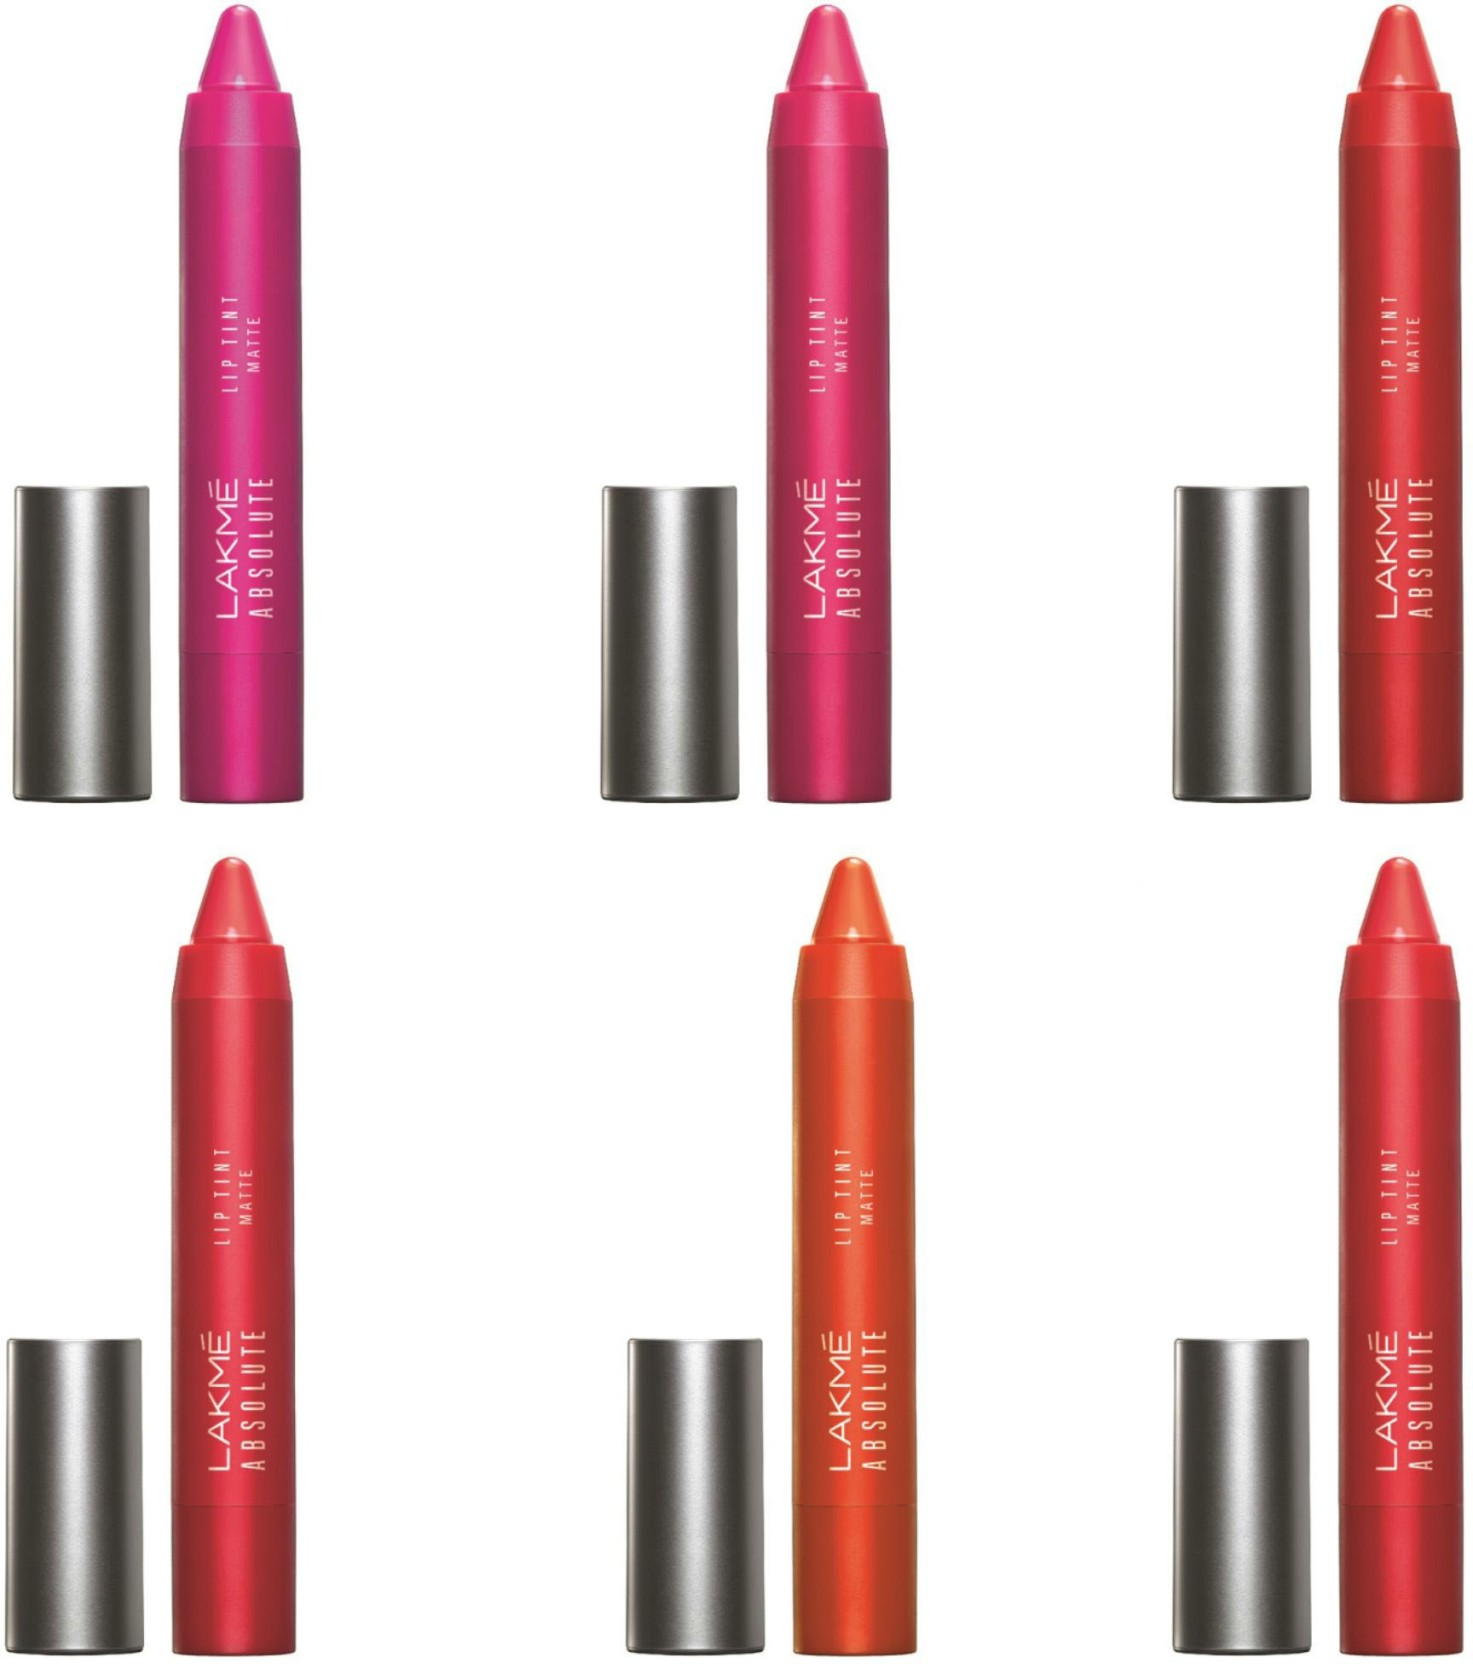 Lakme Absolute Lip Pout Matte Lip Color